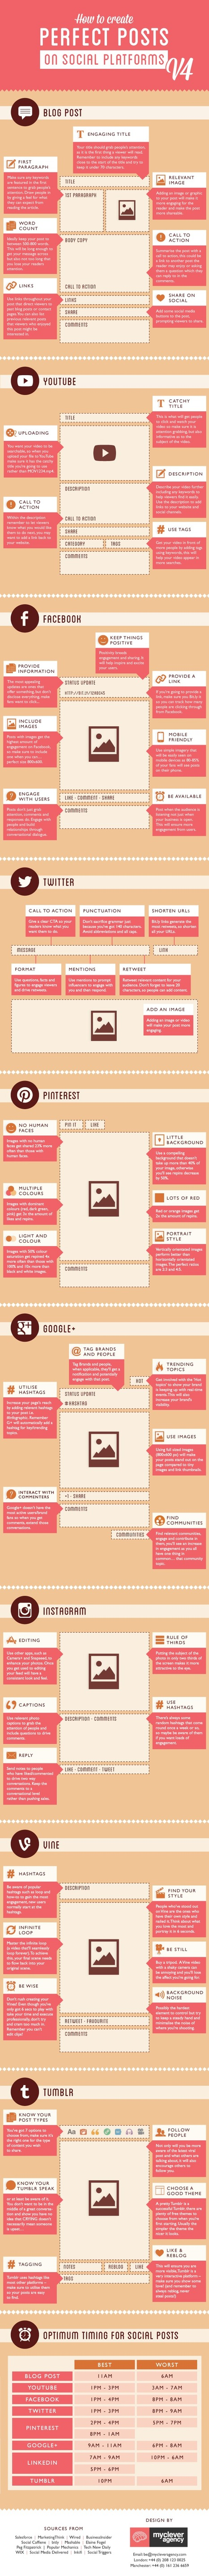 The Art of Creating Perfect Social Media Posts - infographic | Technological Sparks | Scoop.it